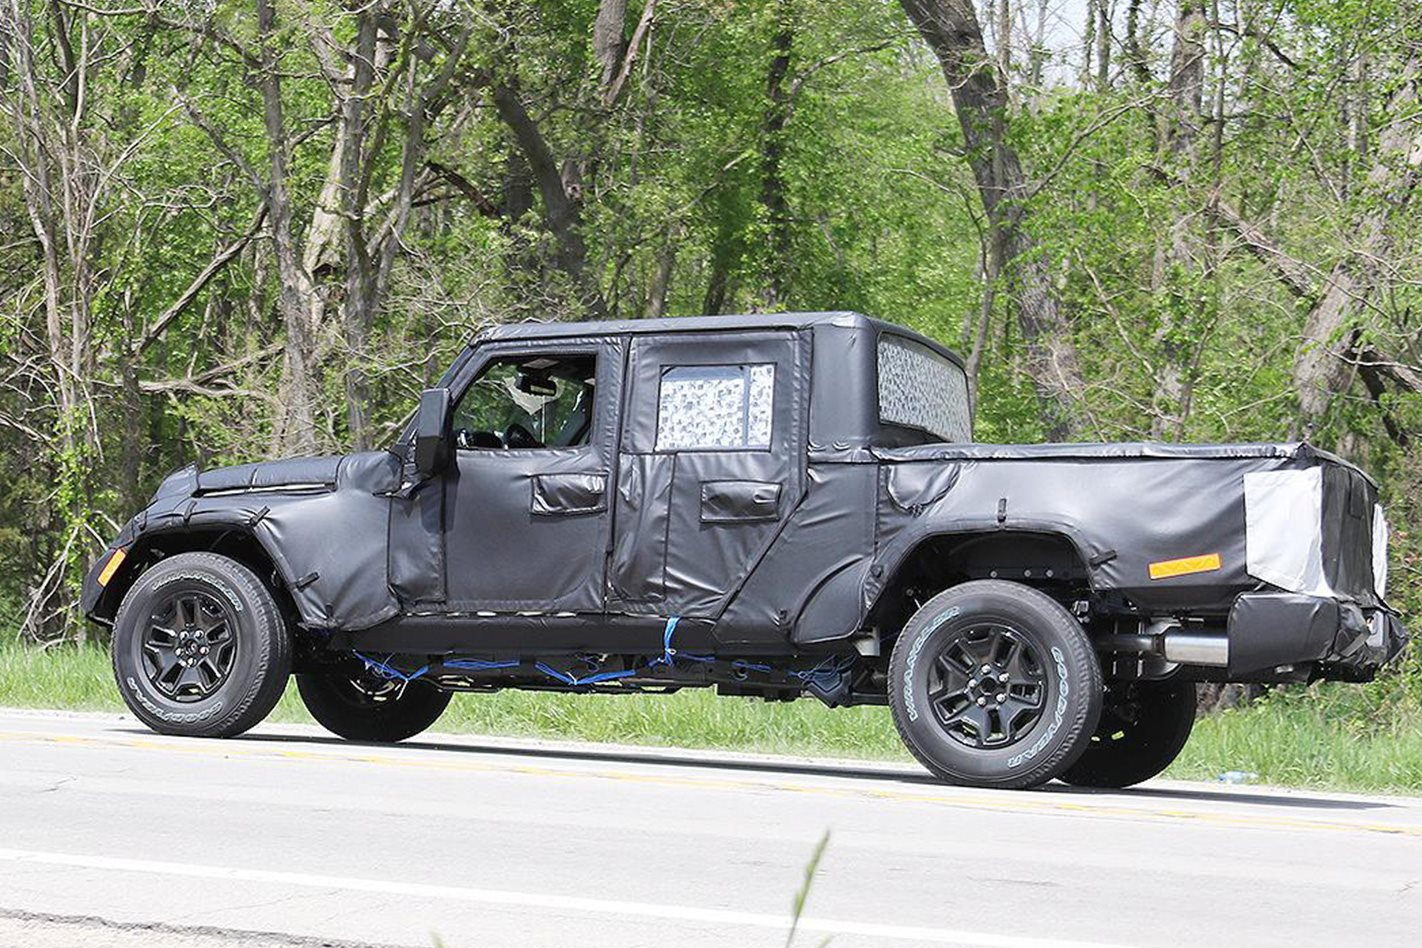 2018 Jeep Wrangler ute Spy pics rear